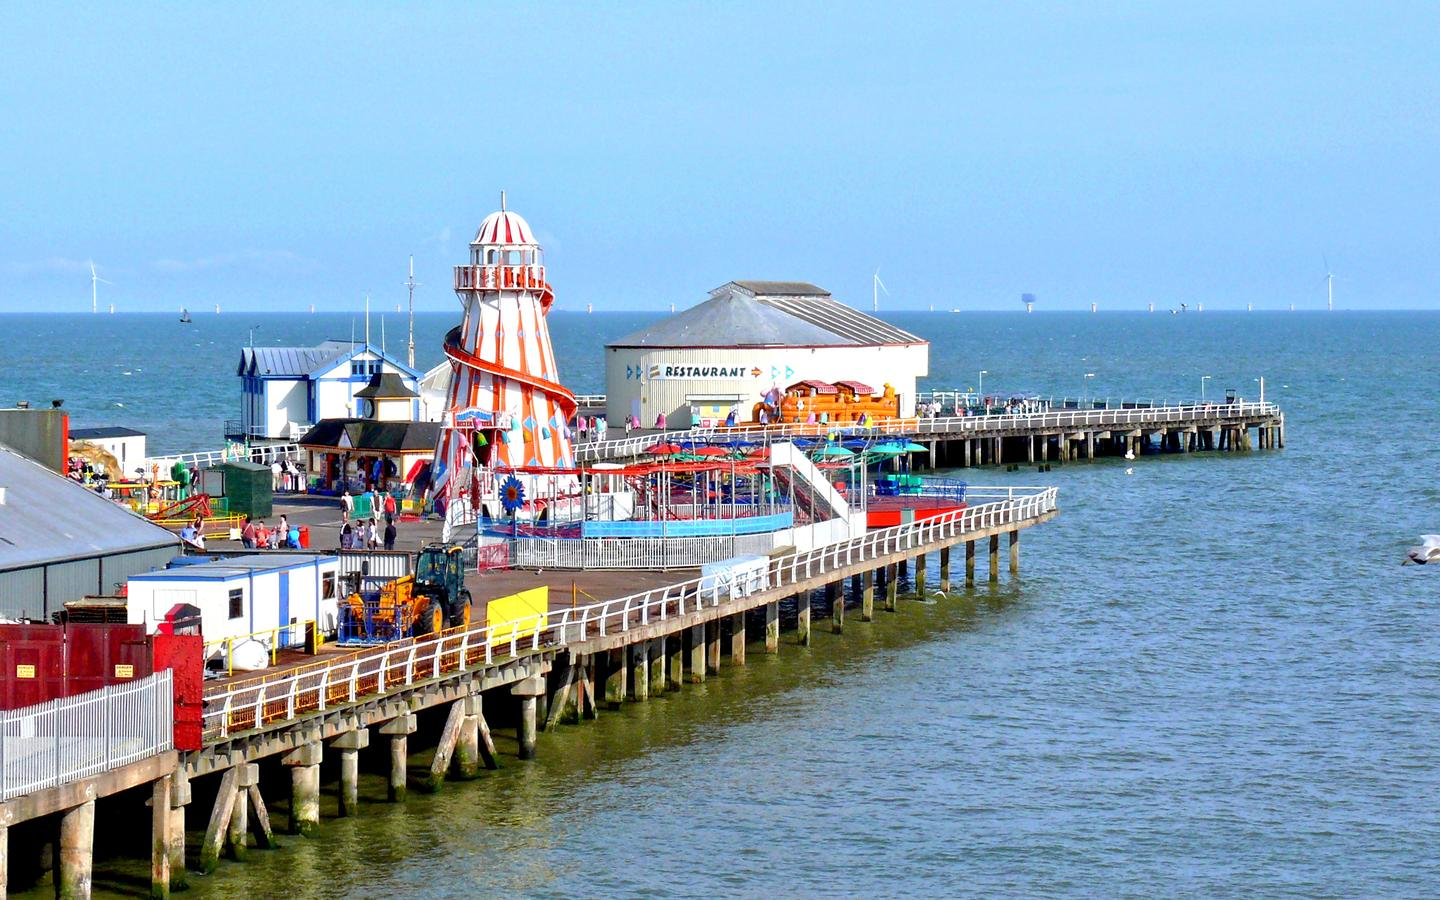 Clacton-on-Sea hotels